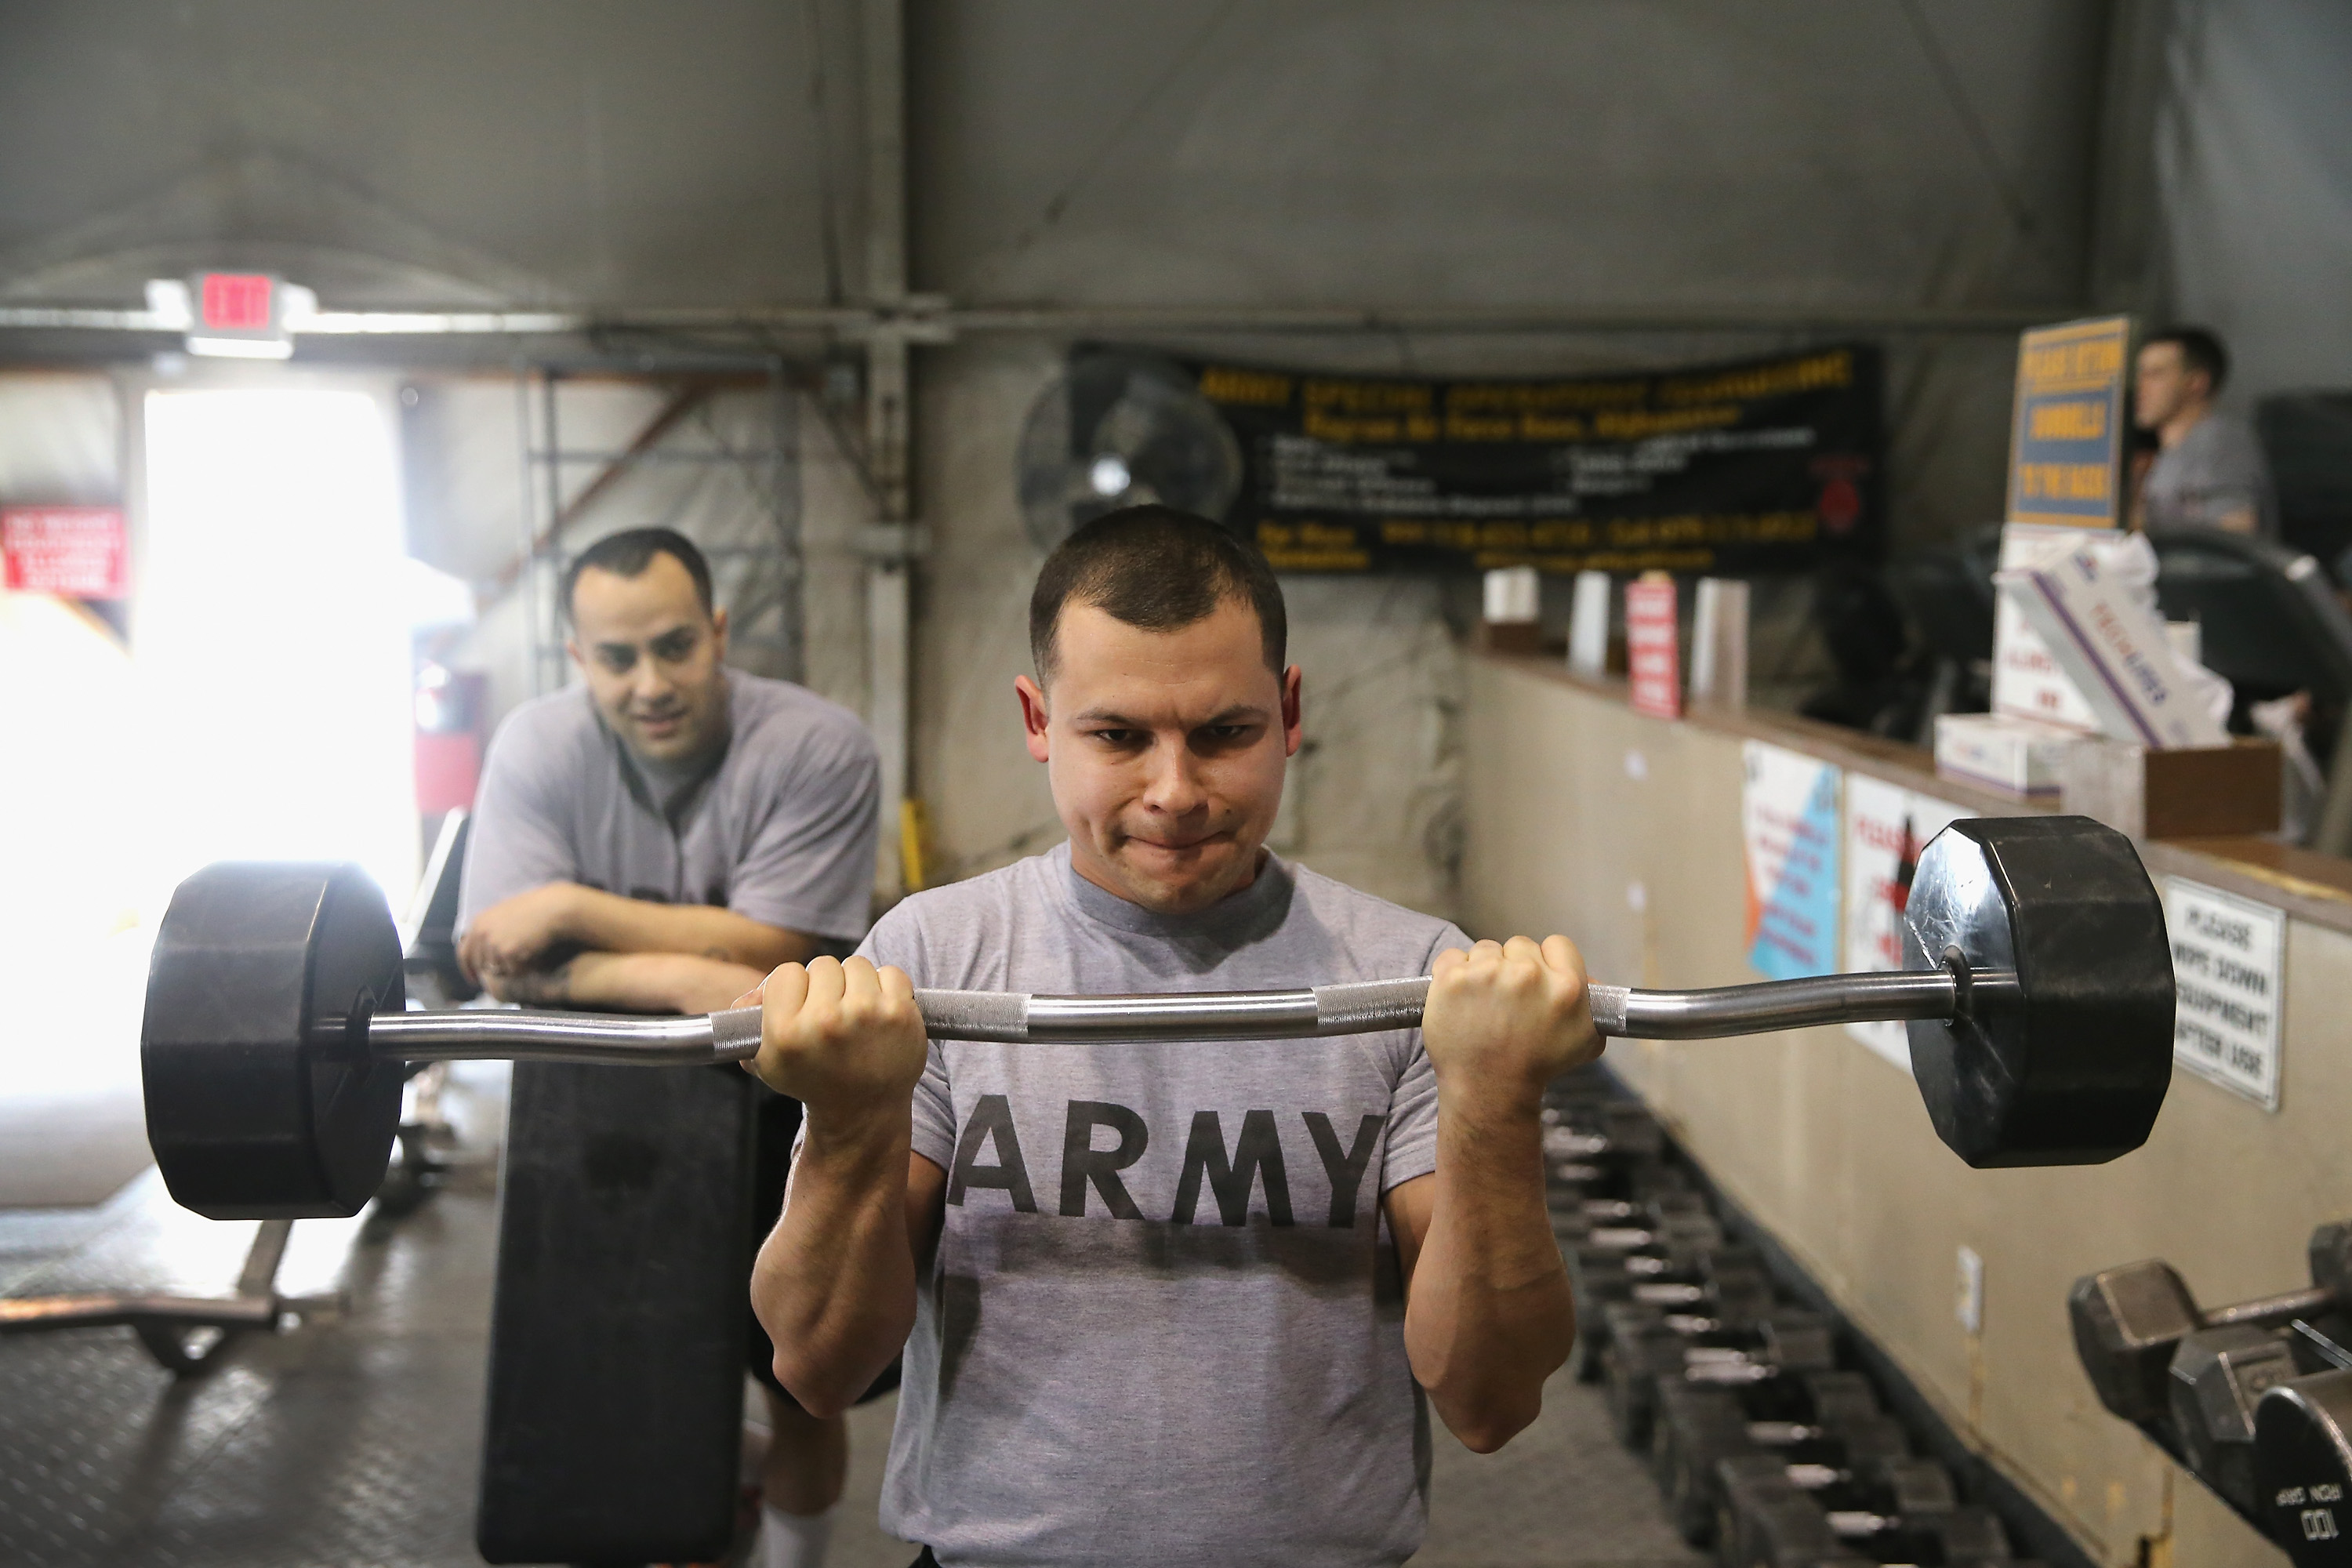 Tape Test Standards For Body Fat In The Army Livestrong